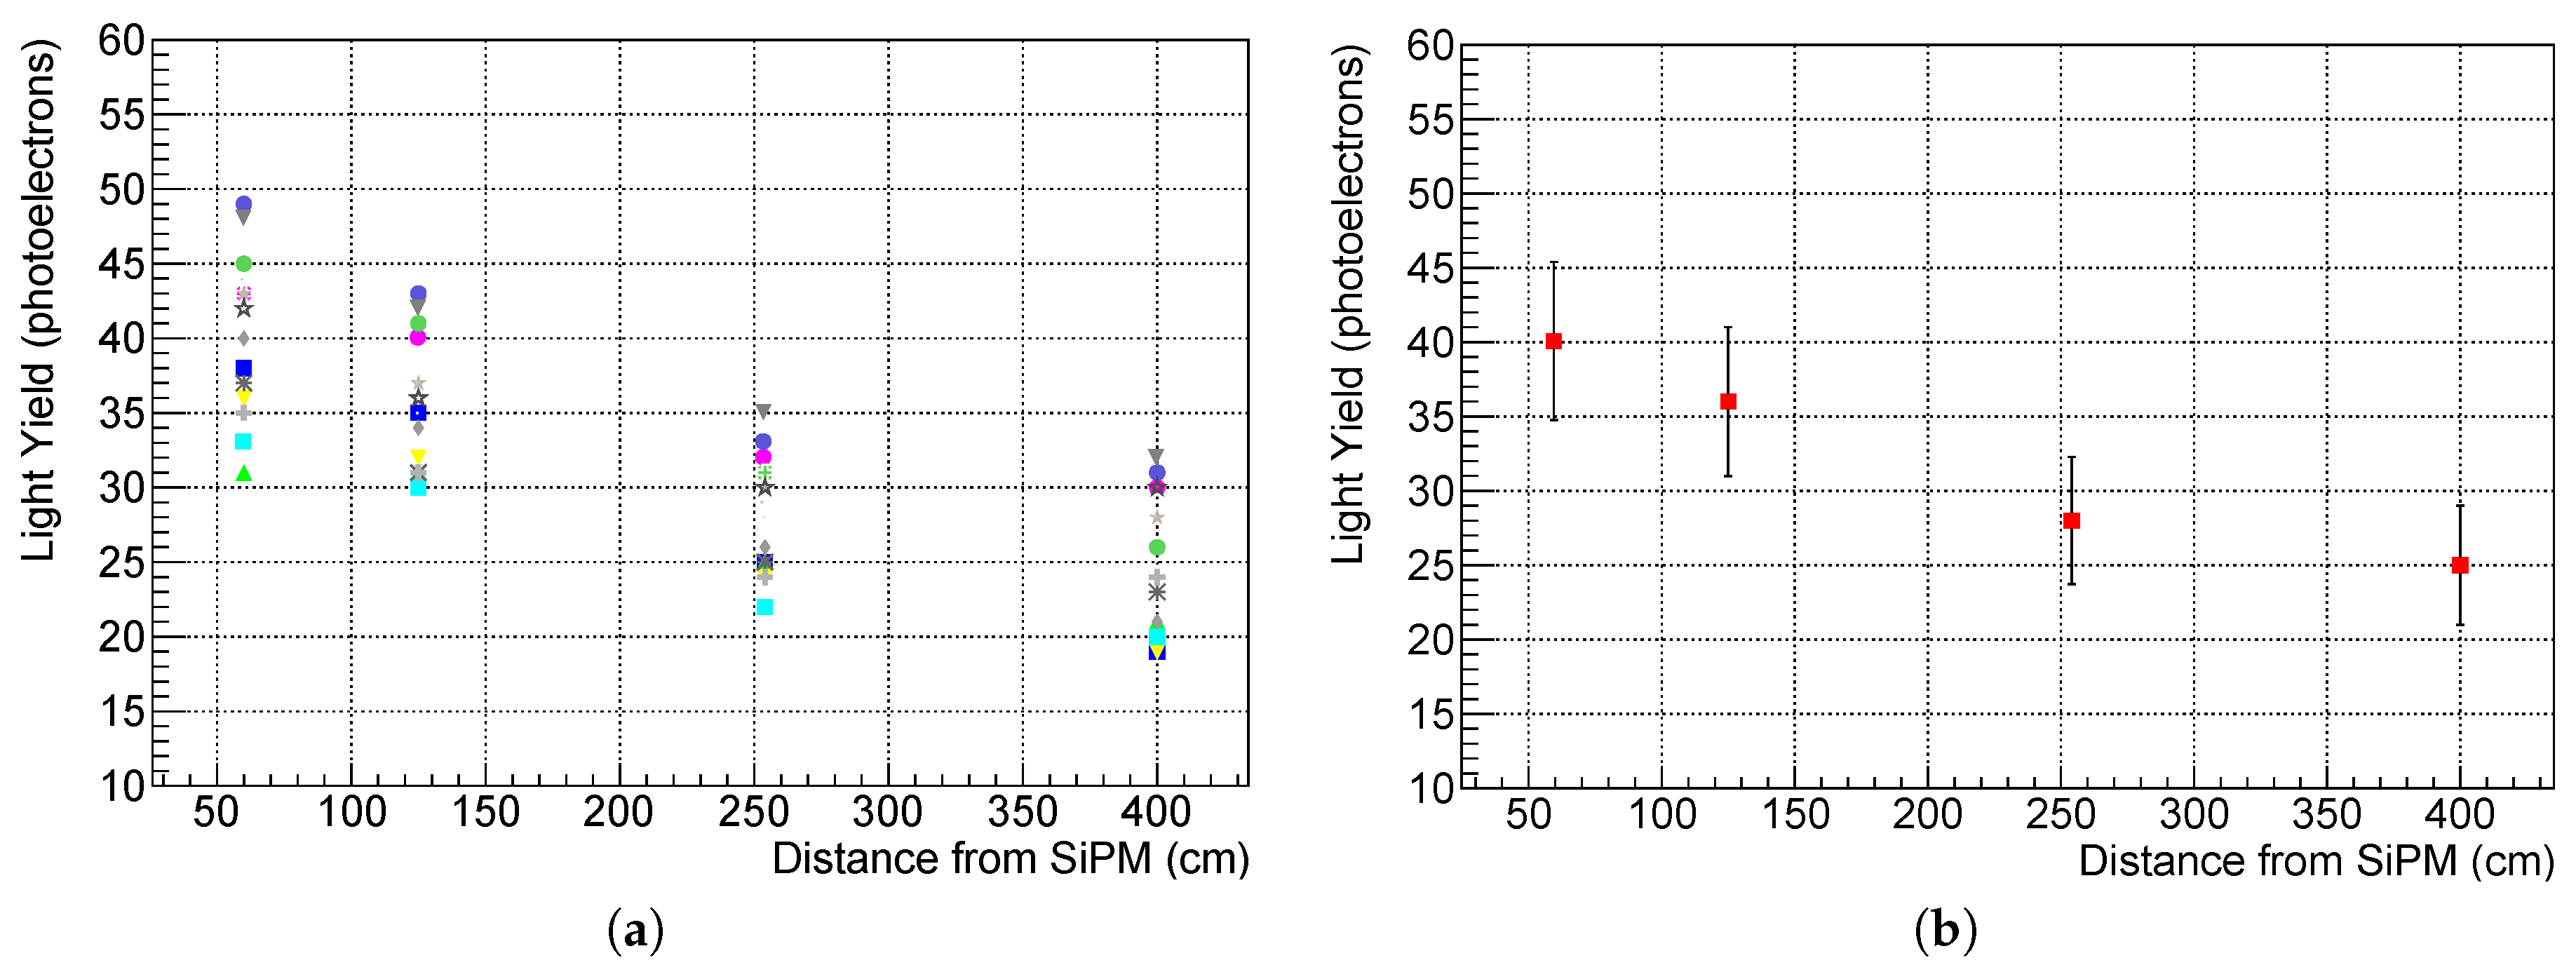 Instruments | Free Full-Text | A Novel Cosmic Ray Tagger